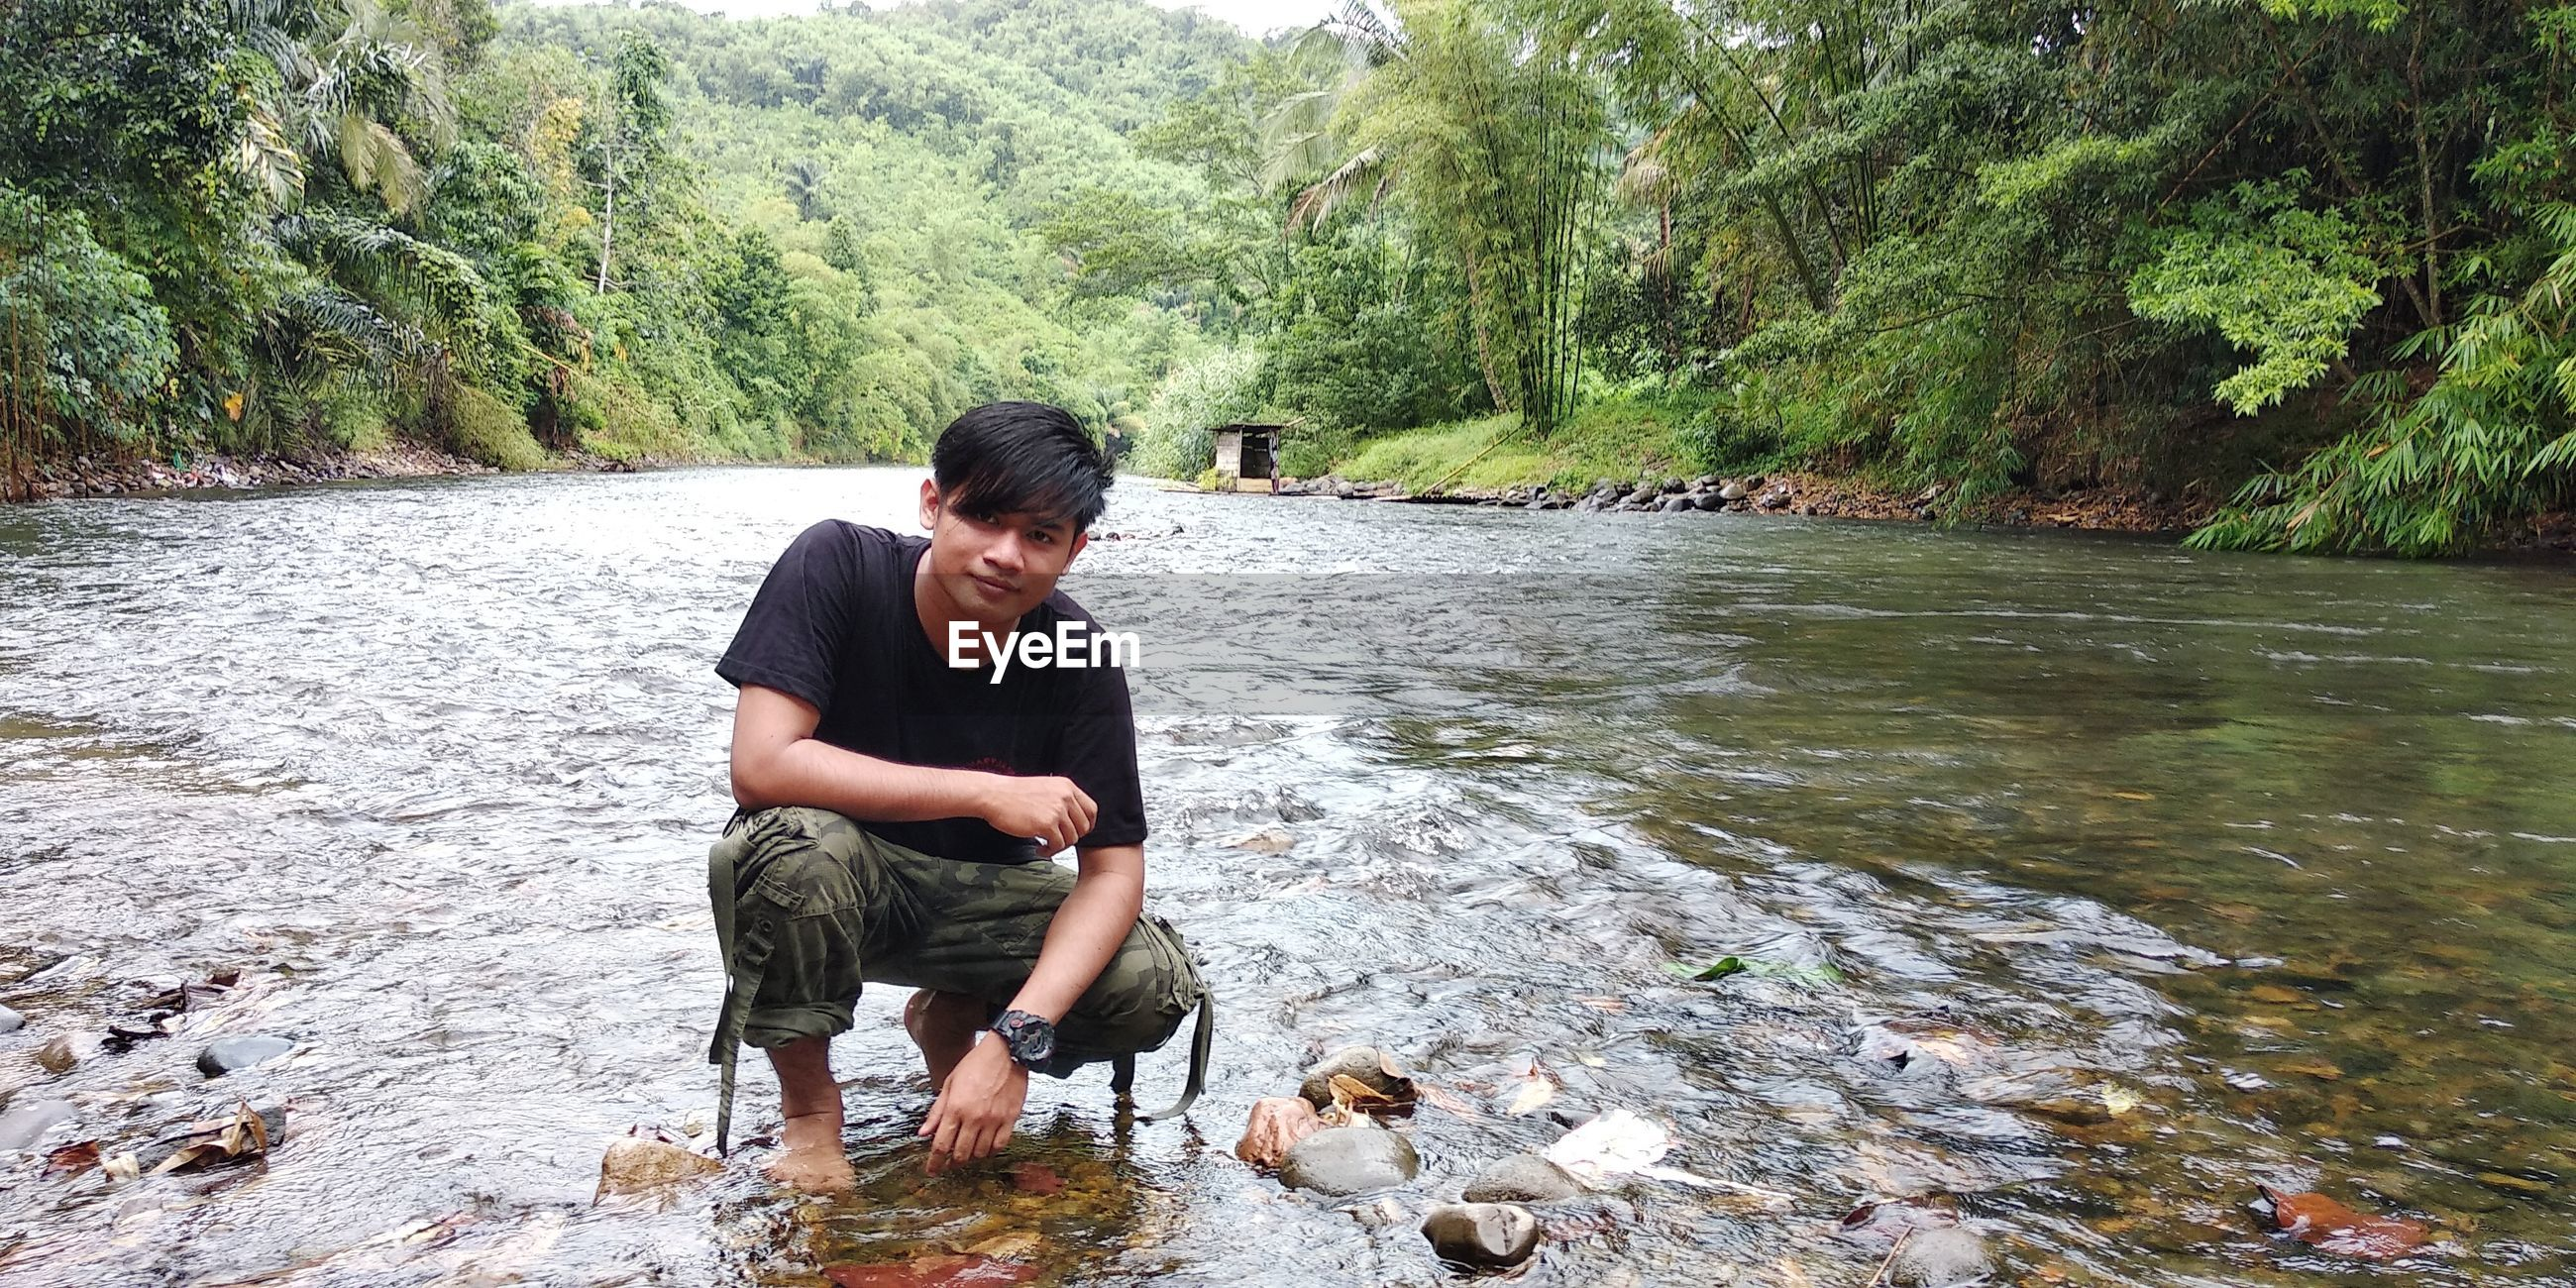 water, rock, one person, river, real people, casual clothing, rock - object, nature, solid, lifestyles, plant, day, tree, leisure activity, full length, beauty in nature, men, flowing water, outdoors, adolescence, teenager, stream - flowing water